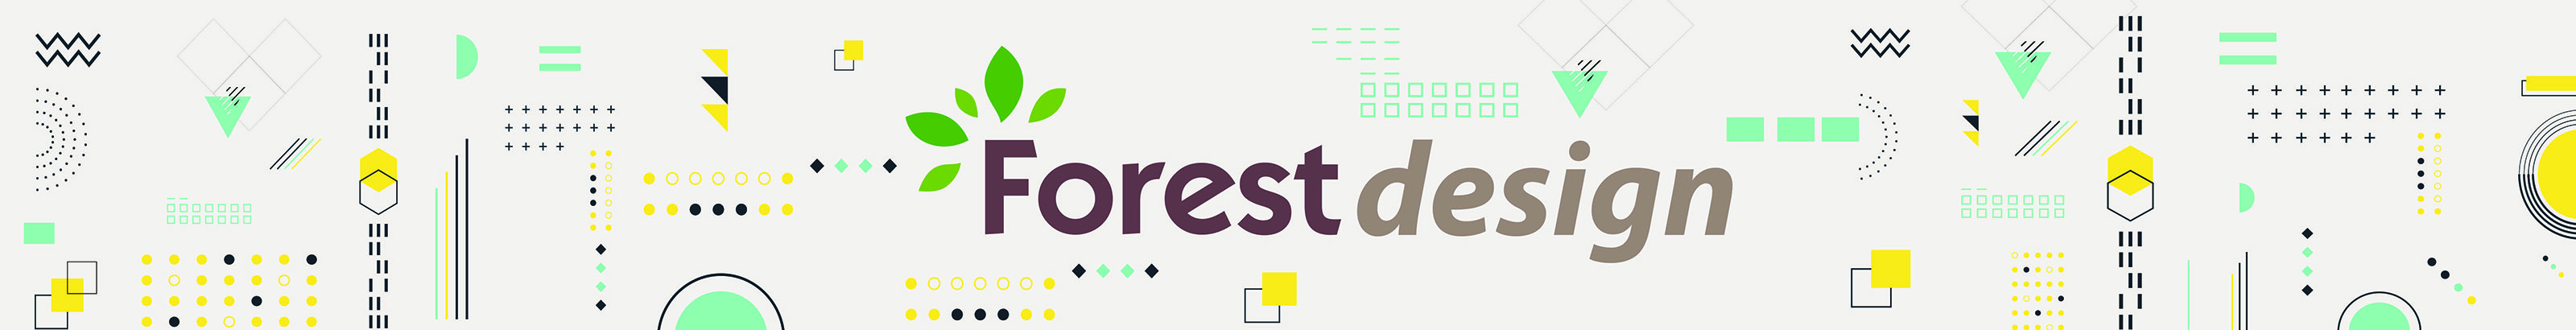 Forest Design logo on a graphic banner.